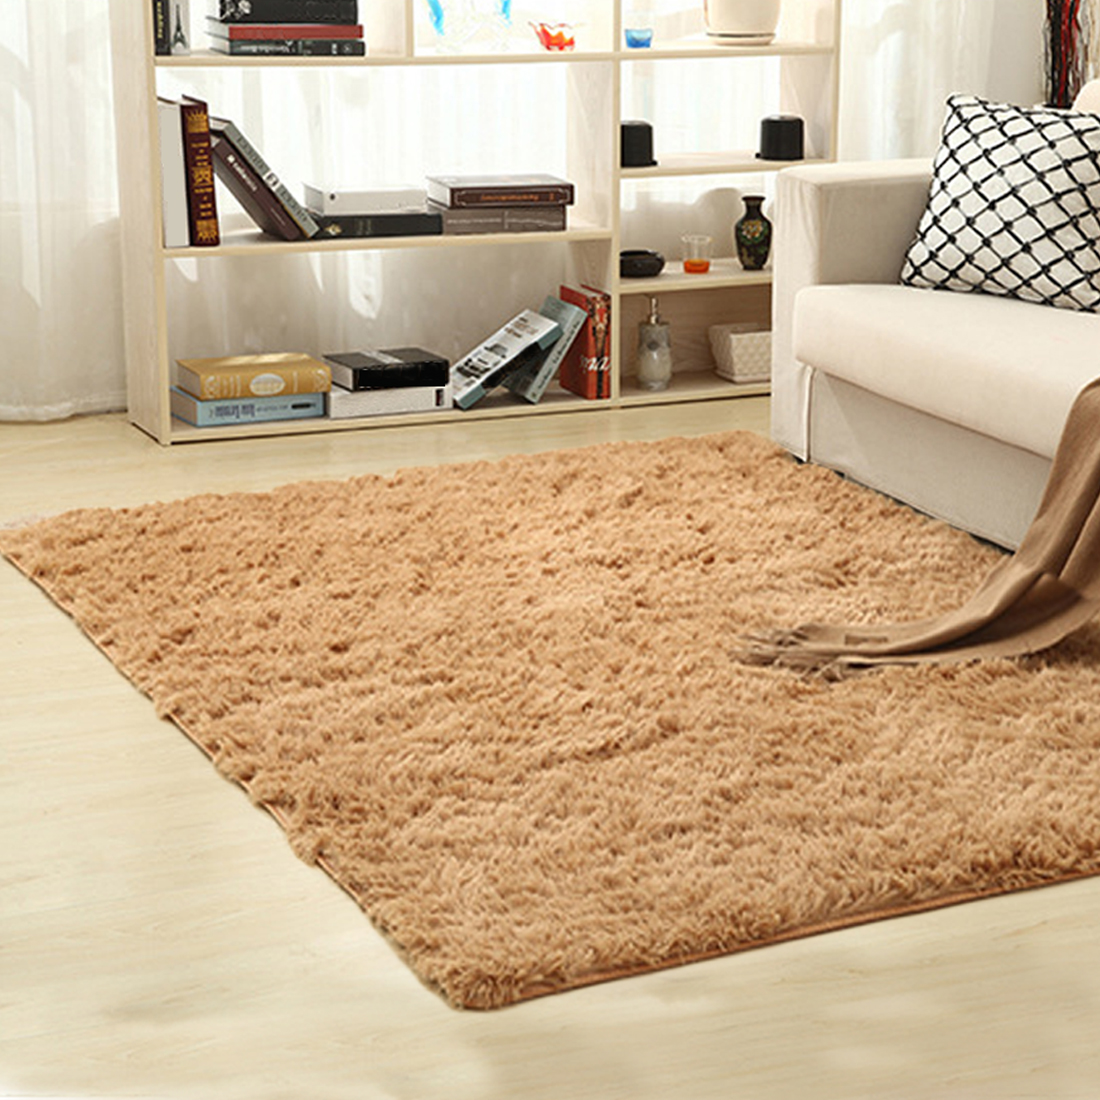 Living Room Floor Rugs